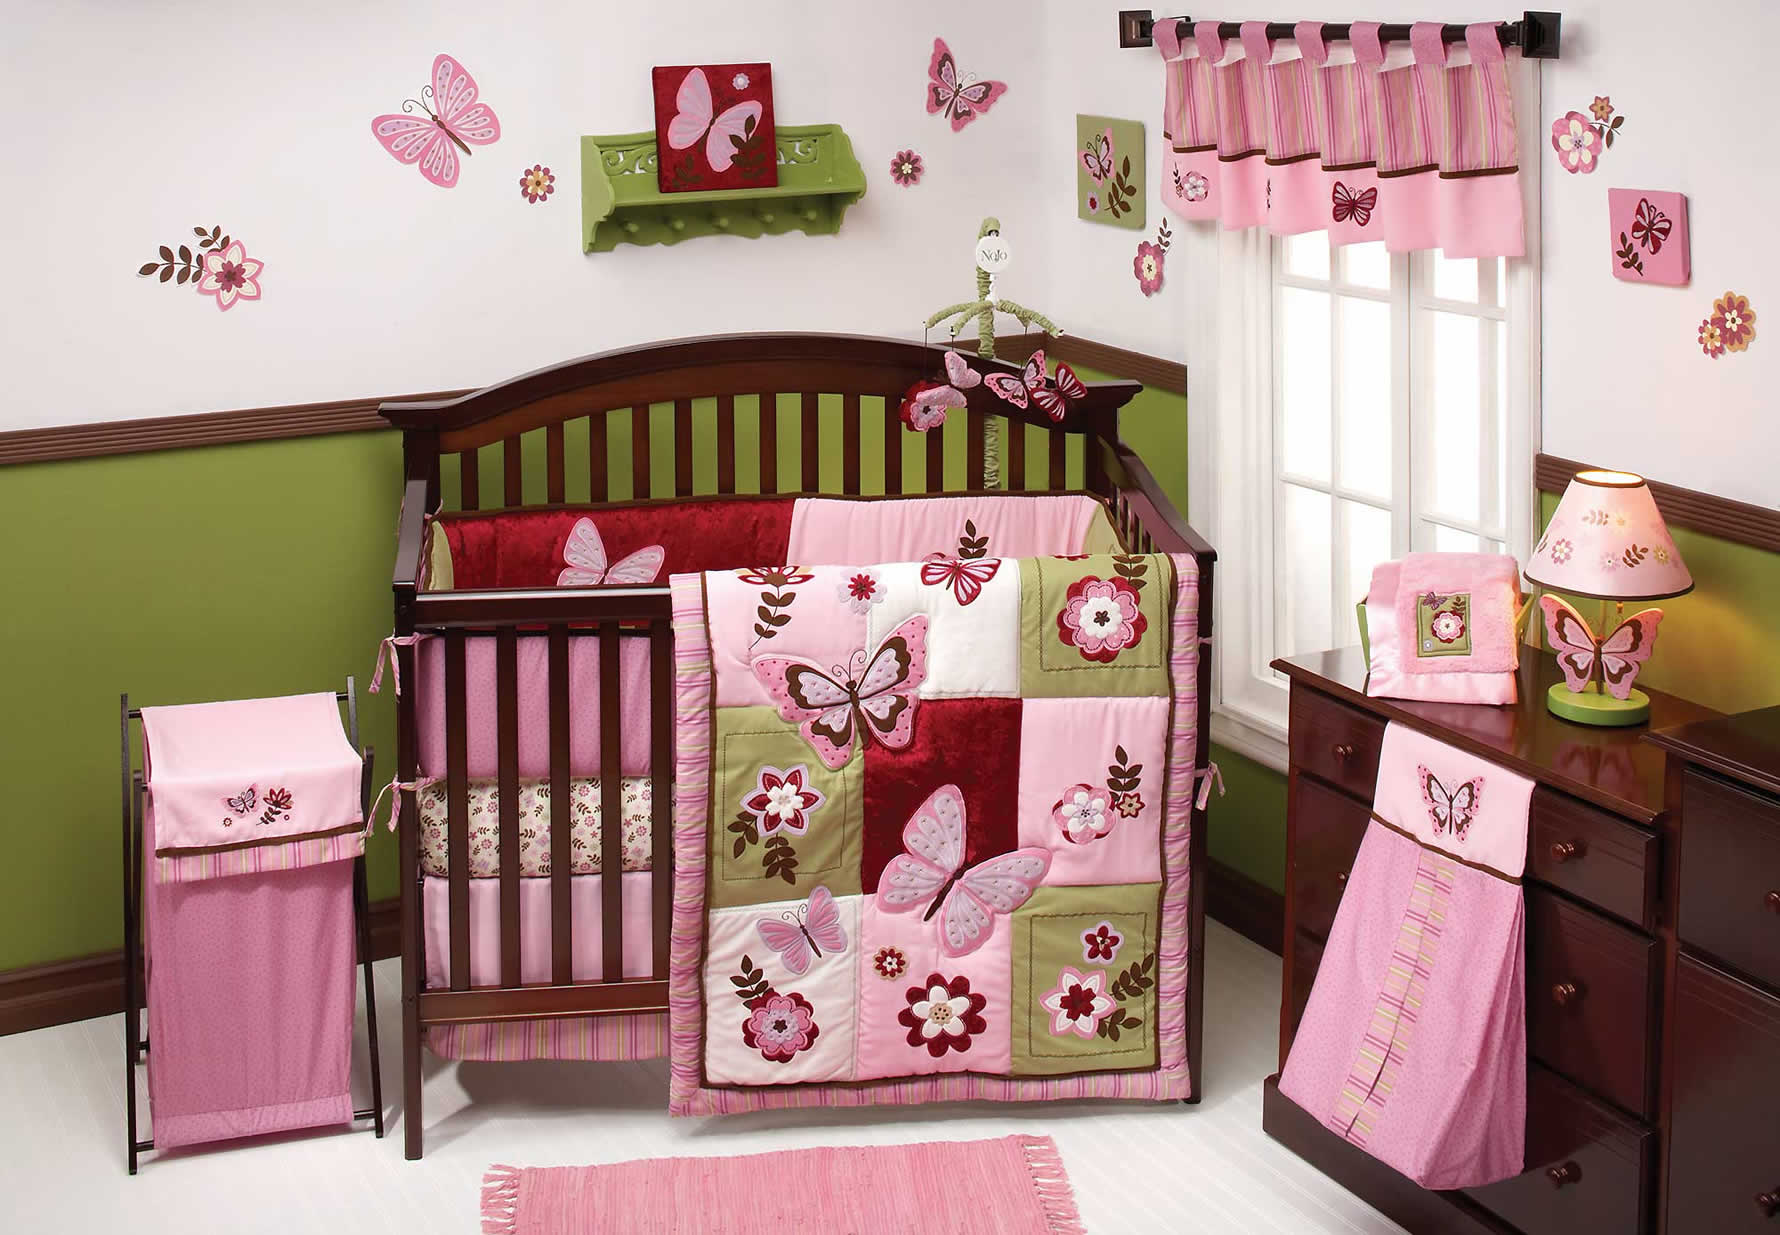 Superb Baby Crib Bedding